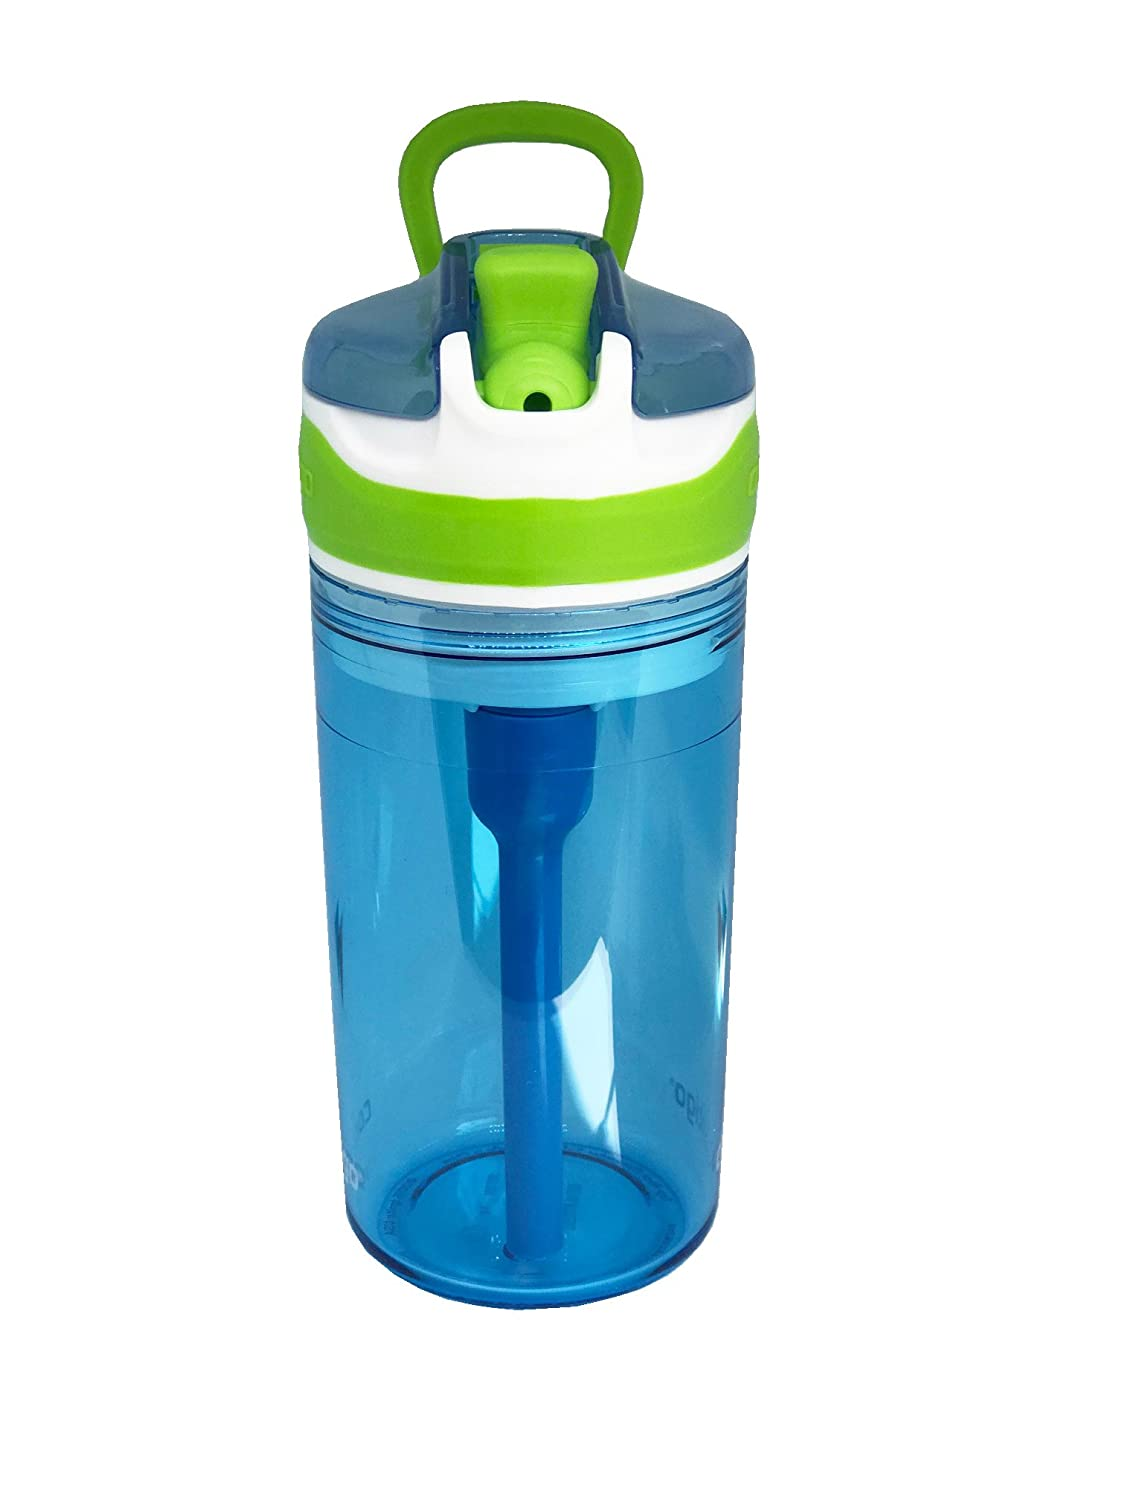 Contigo Kids 2 and 1 Snack Hero Kids Tumbler and Snack Cup- 13 oz (Blue)